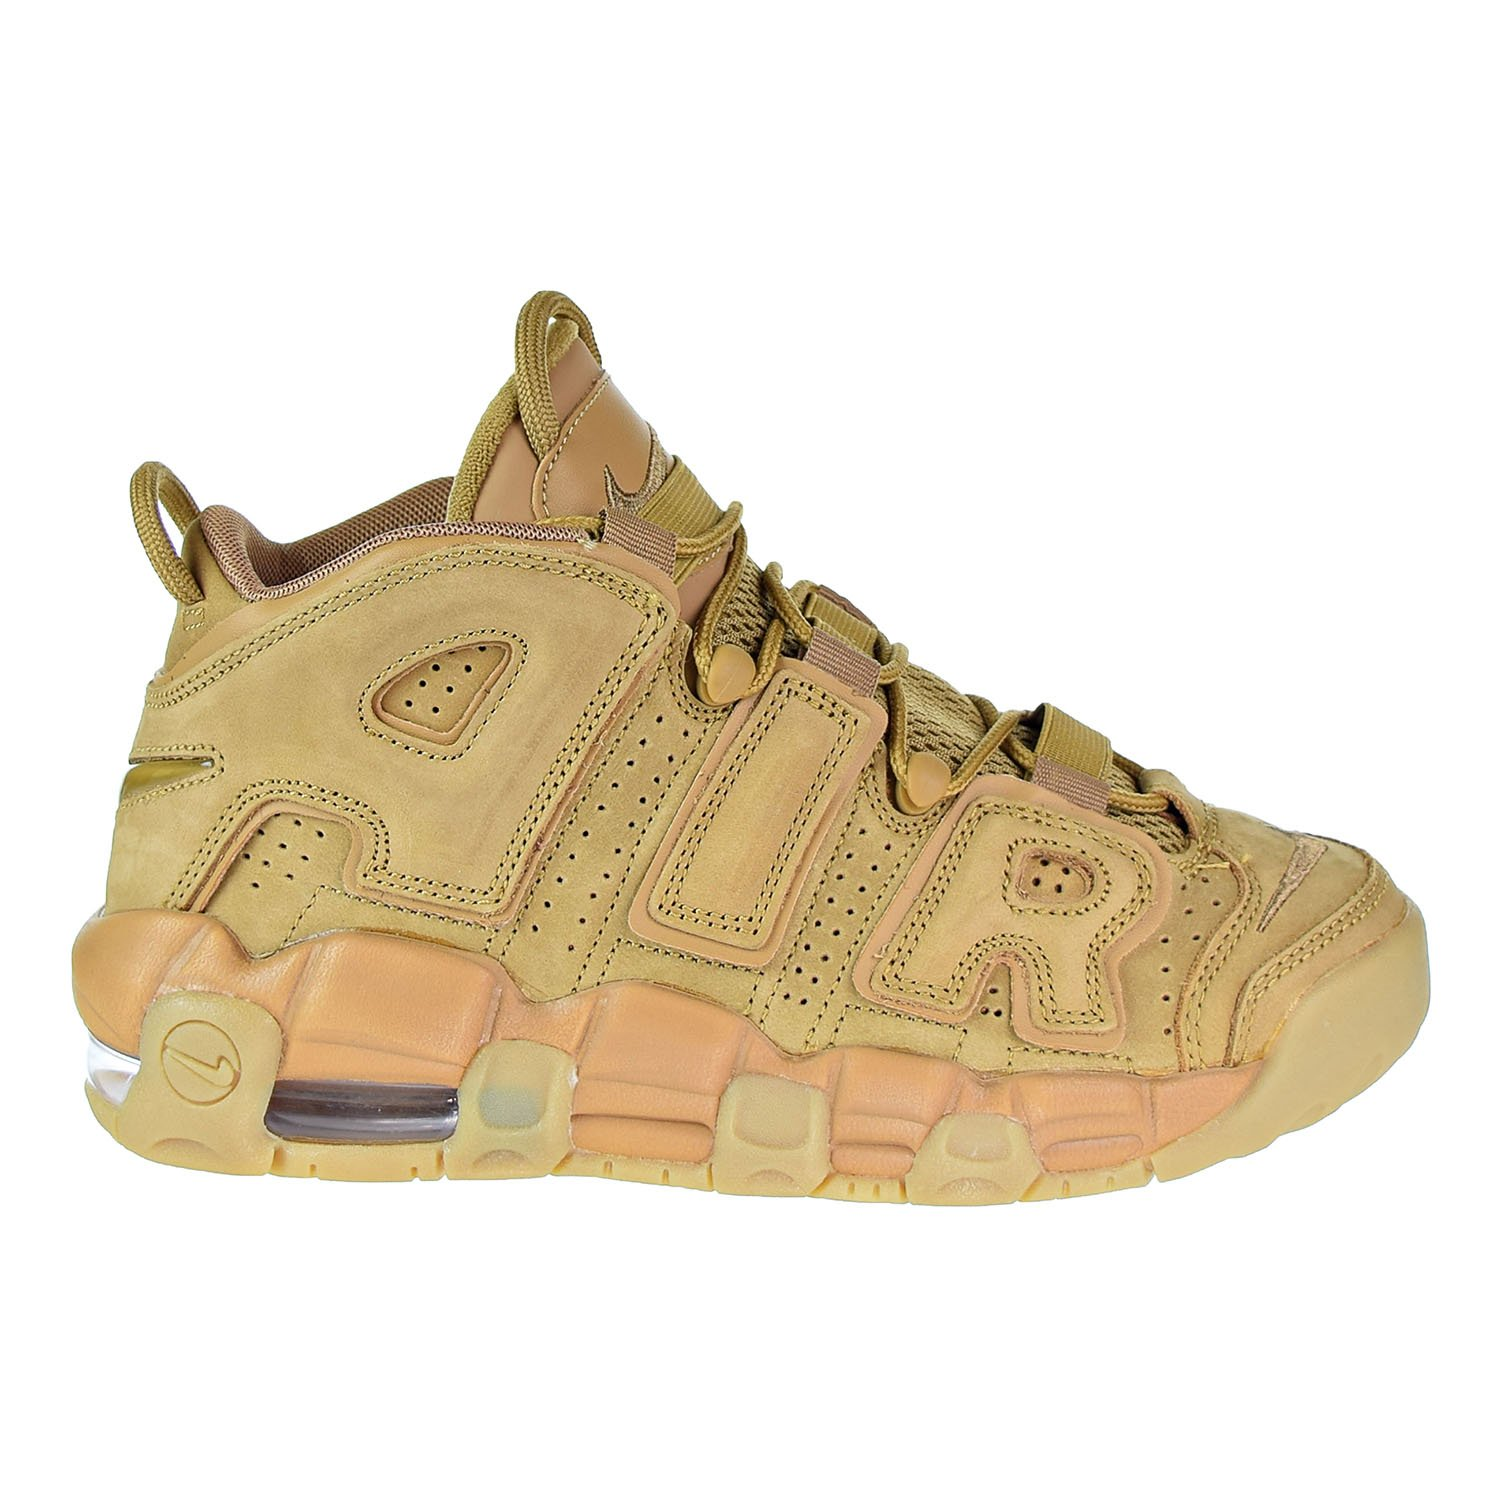 Nike Air More Uptempo SE (GS) - 922845-200 -  45